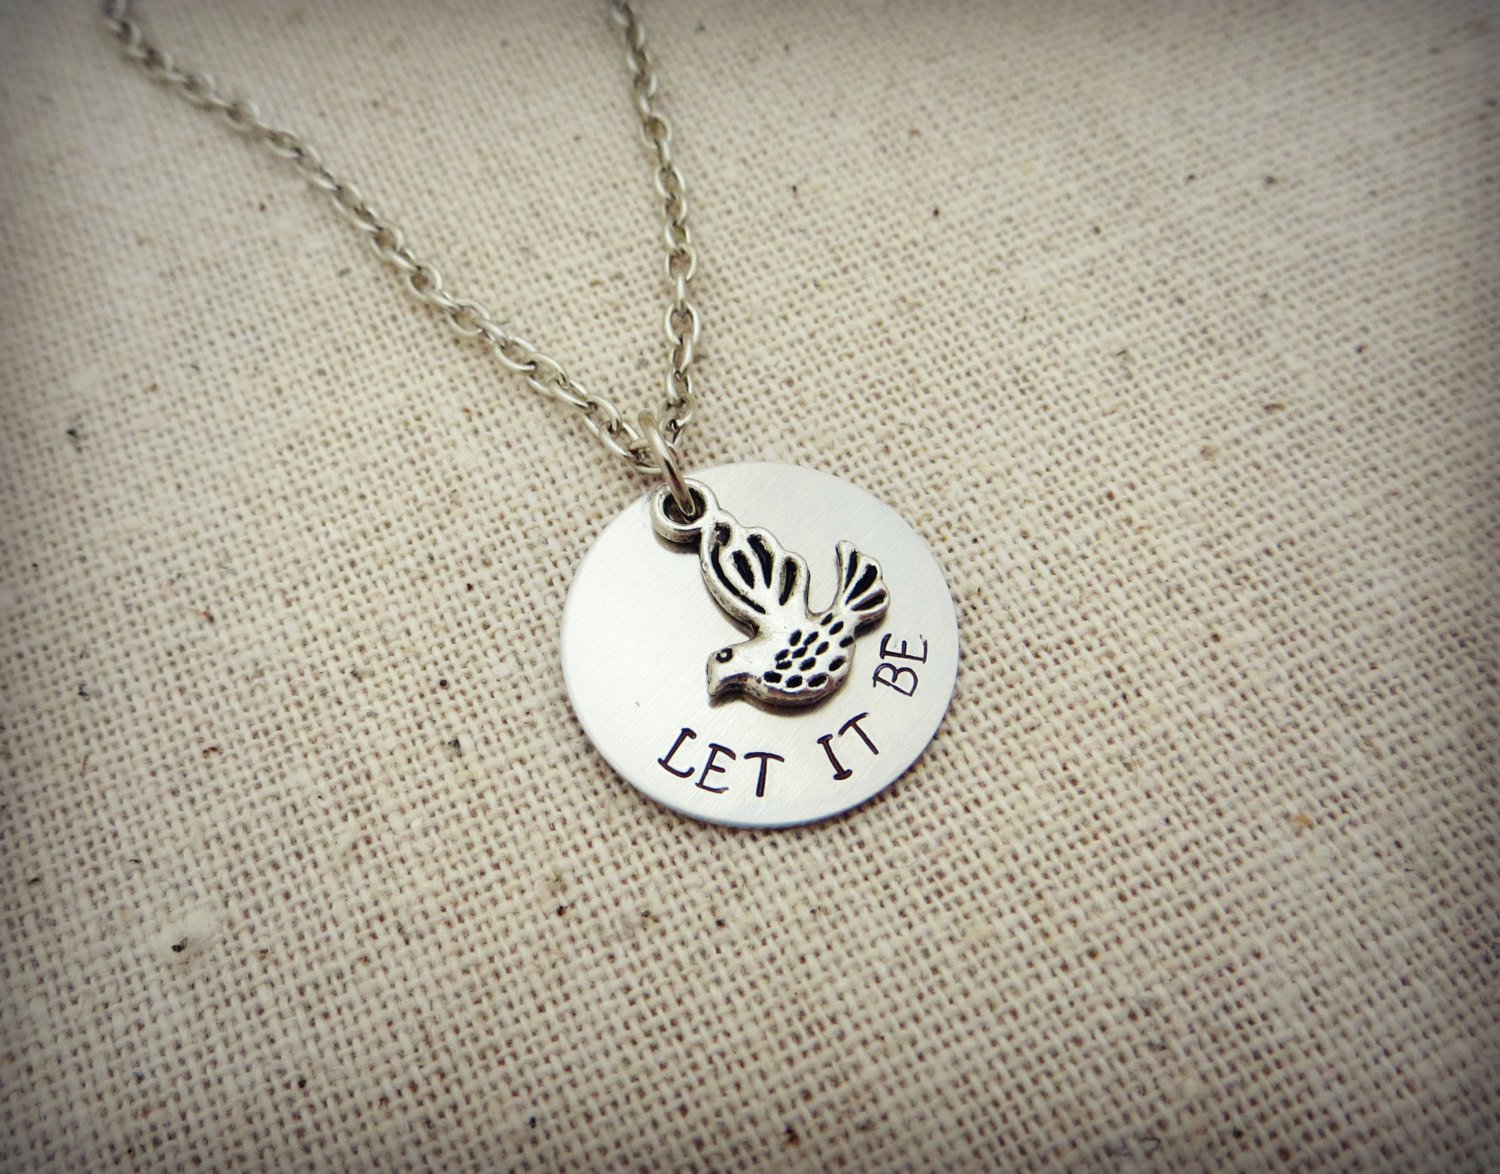 The Beatles Inspired Let It Be Hand Stamped Lyrical Quote Necklace (Silver, 18 inches)